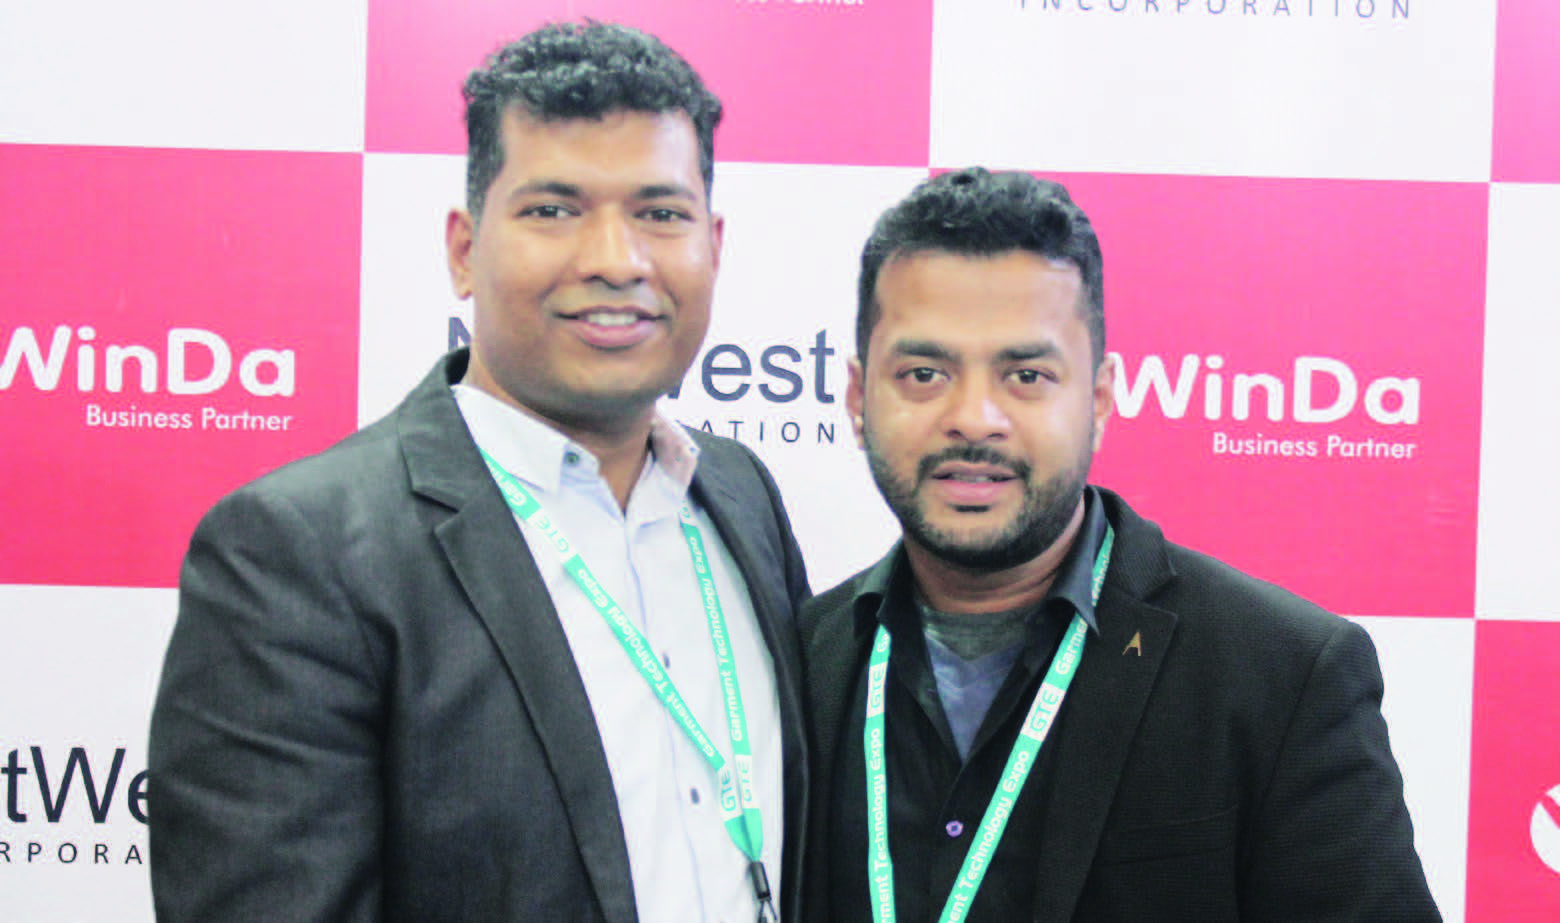 Na twest Showcases Variety of Solutions at Gte